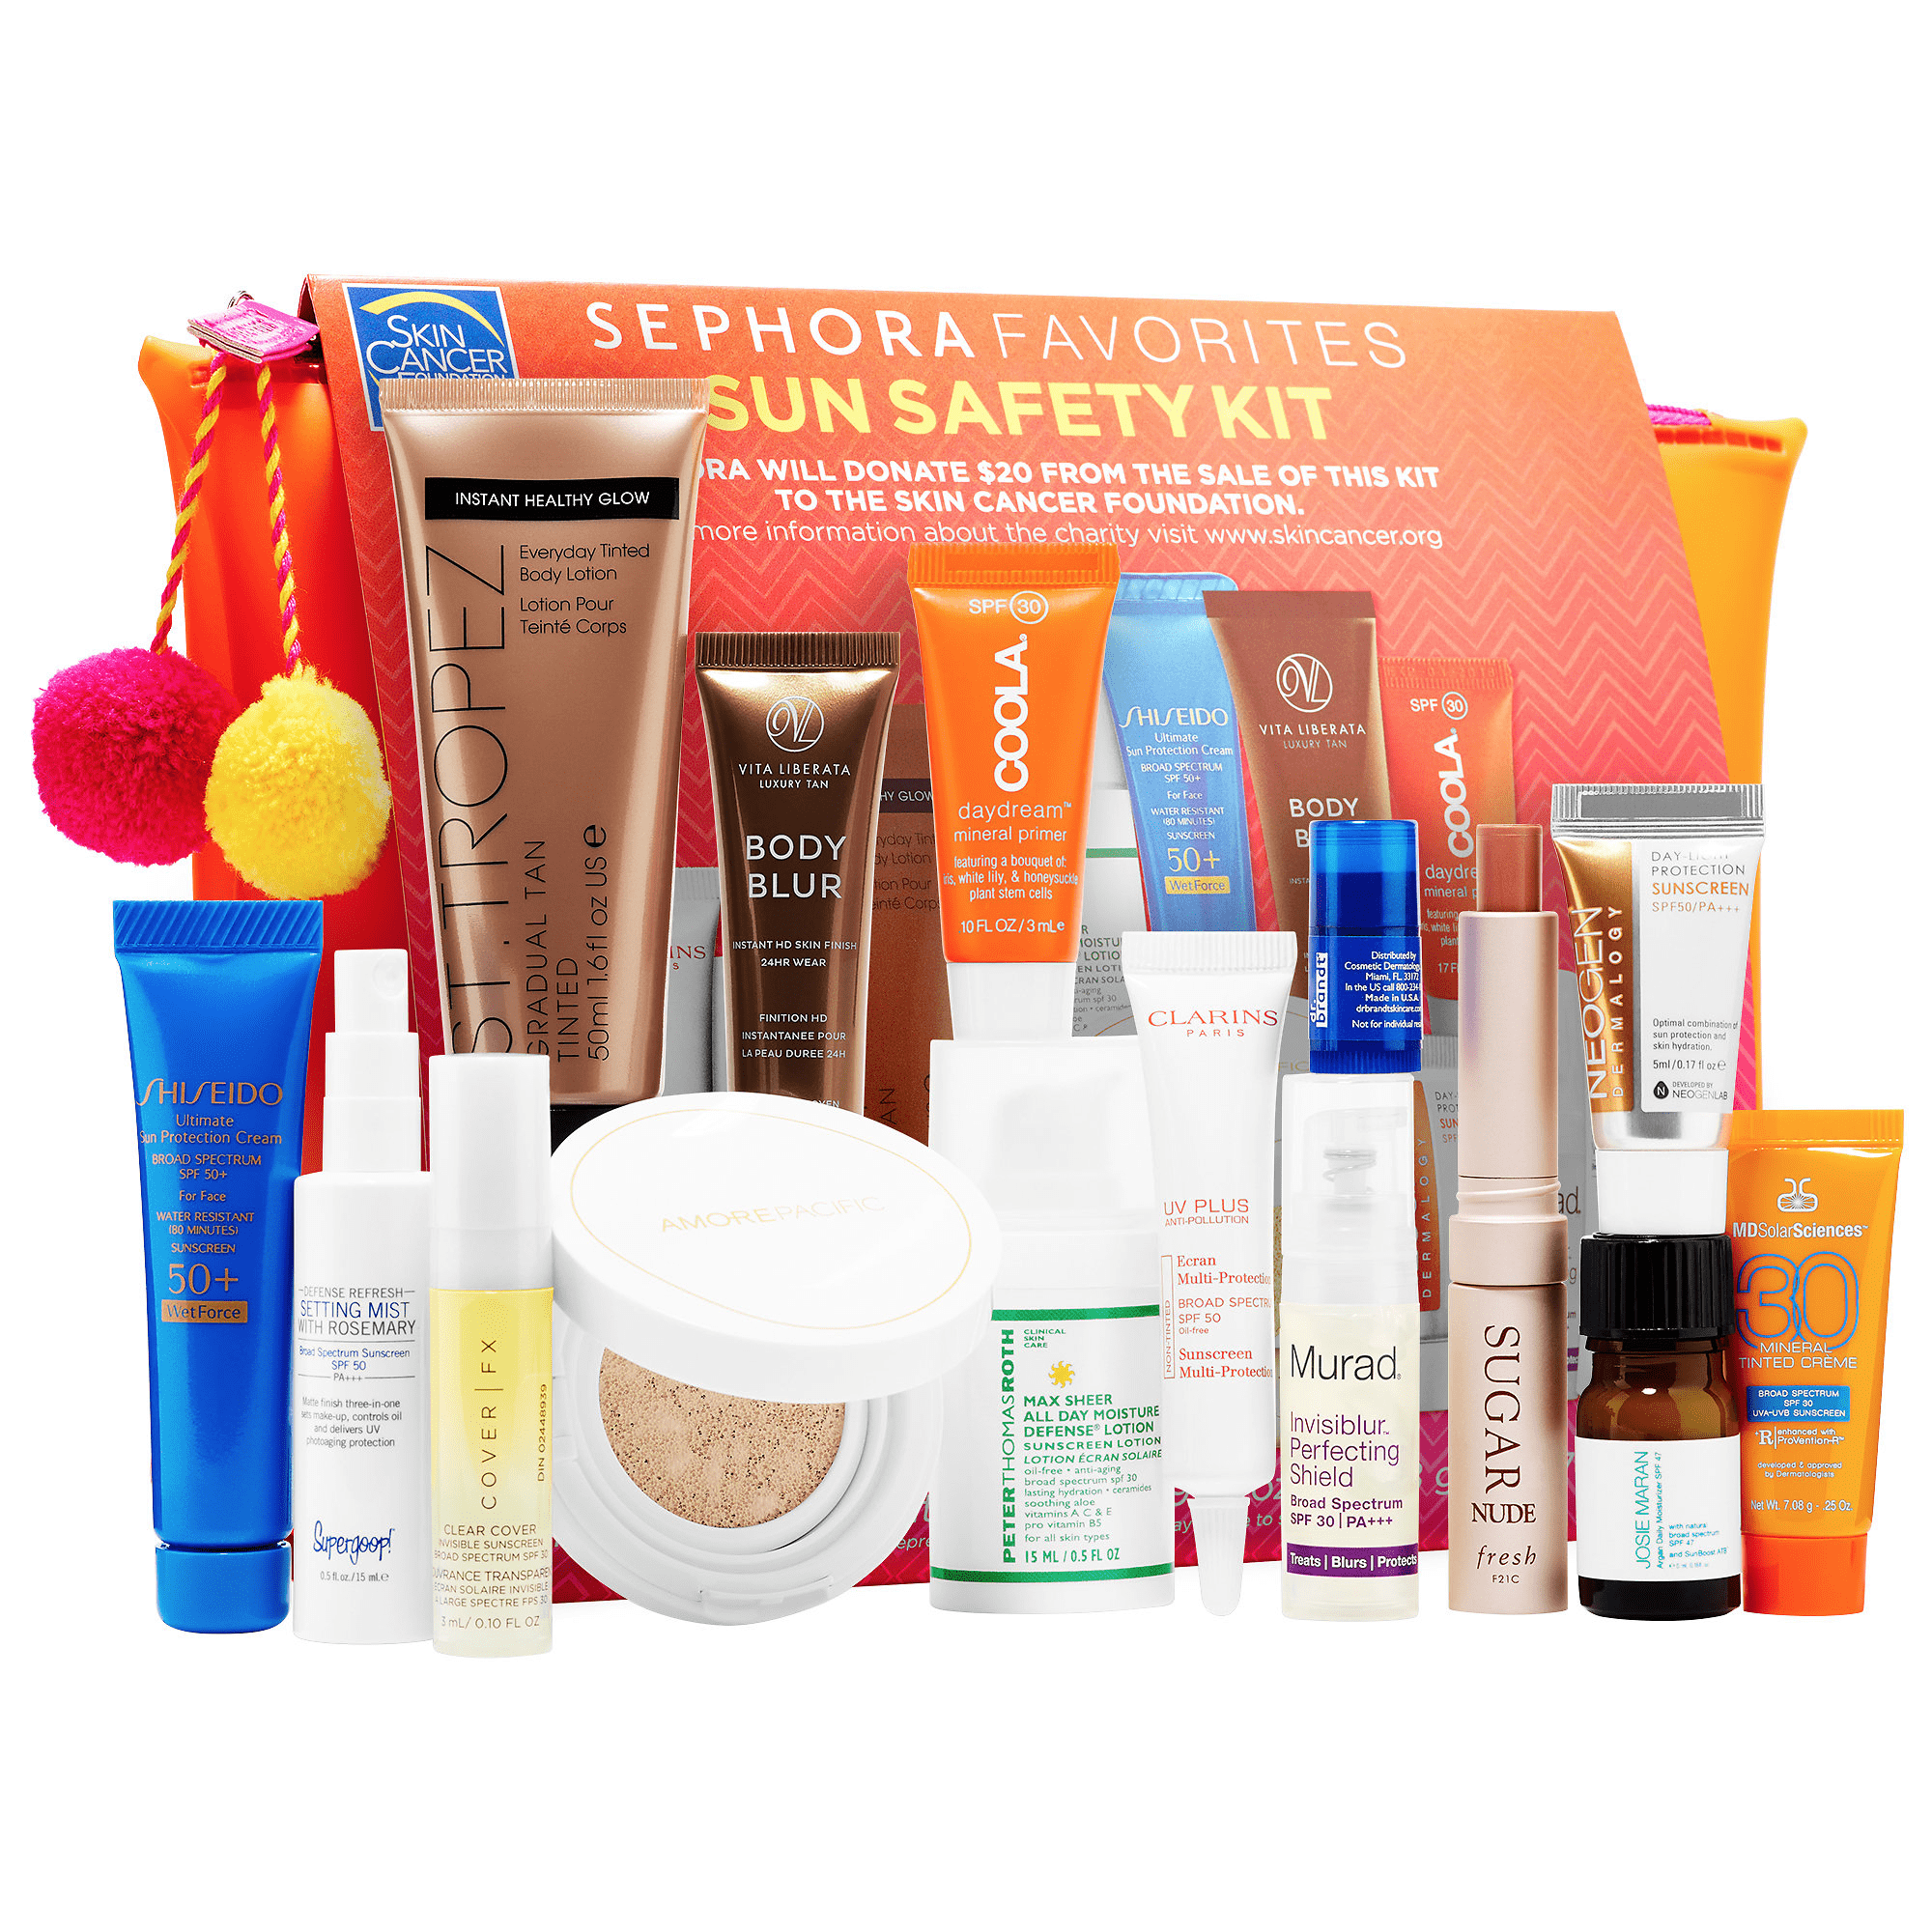 Sephora Sun Safety Kit 2017 Available On Site Now + Coupons